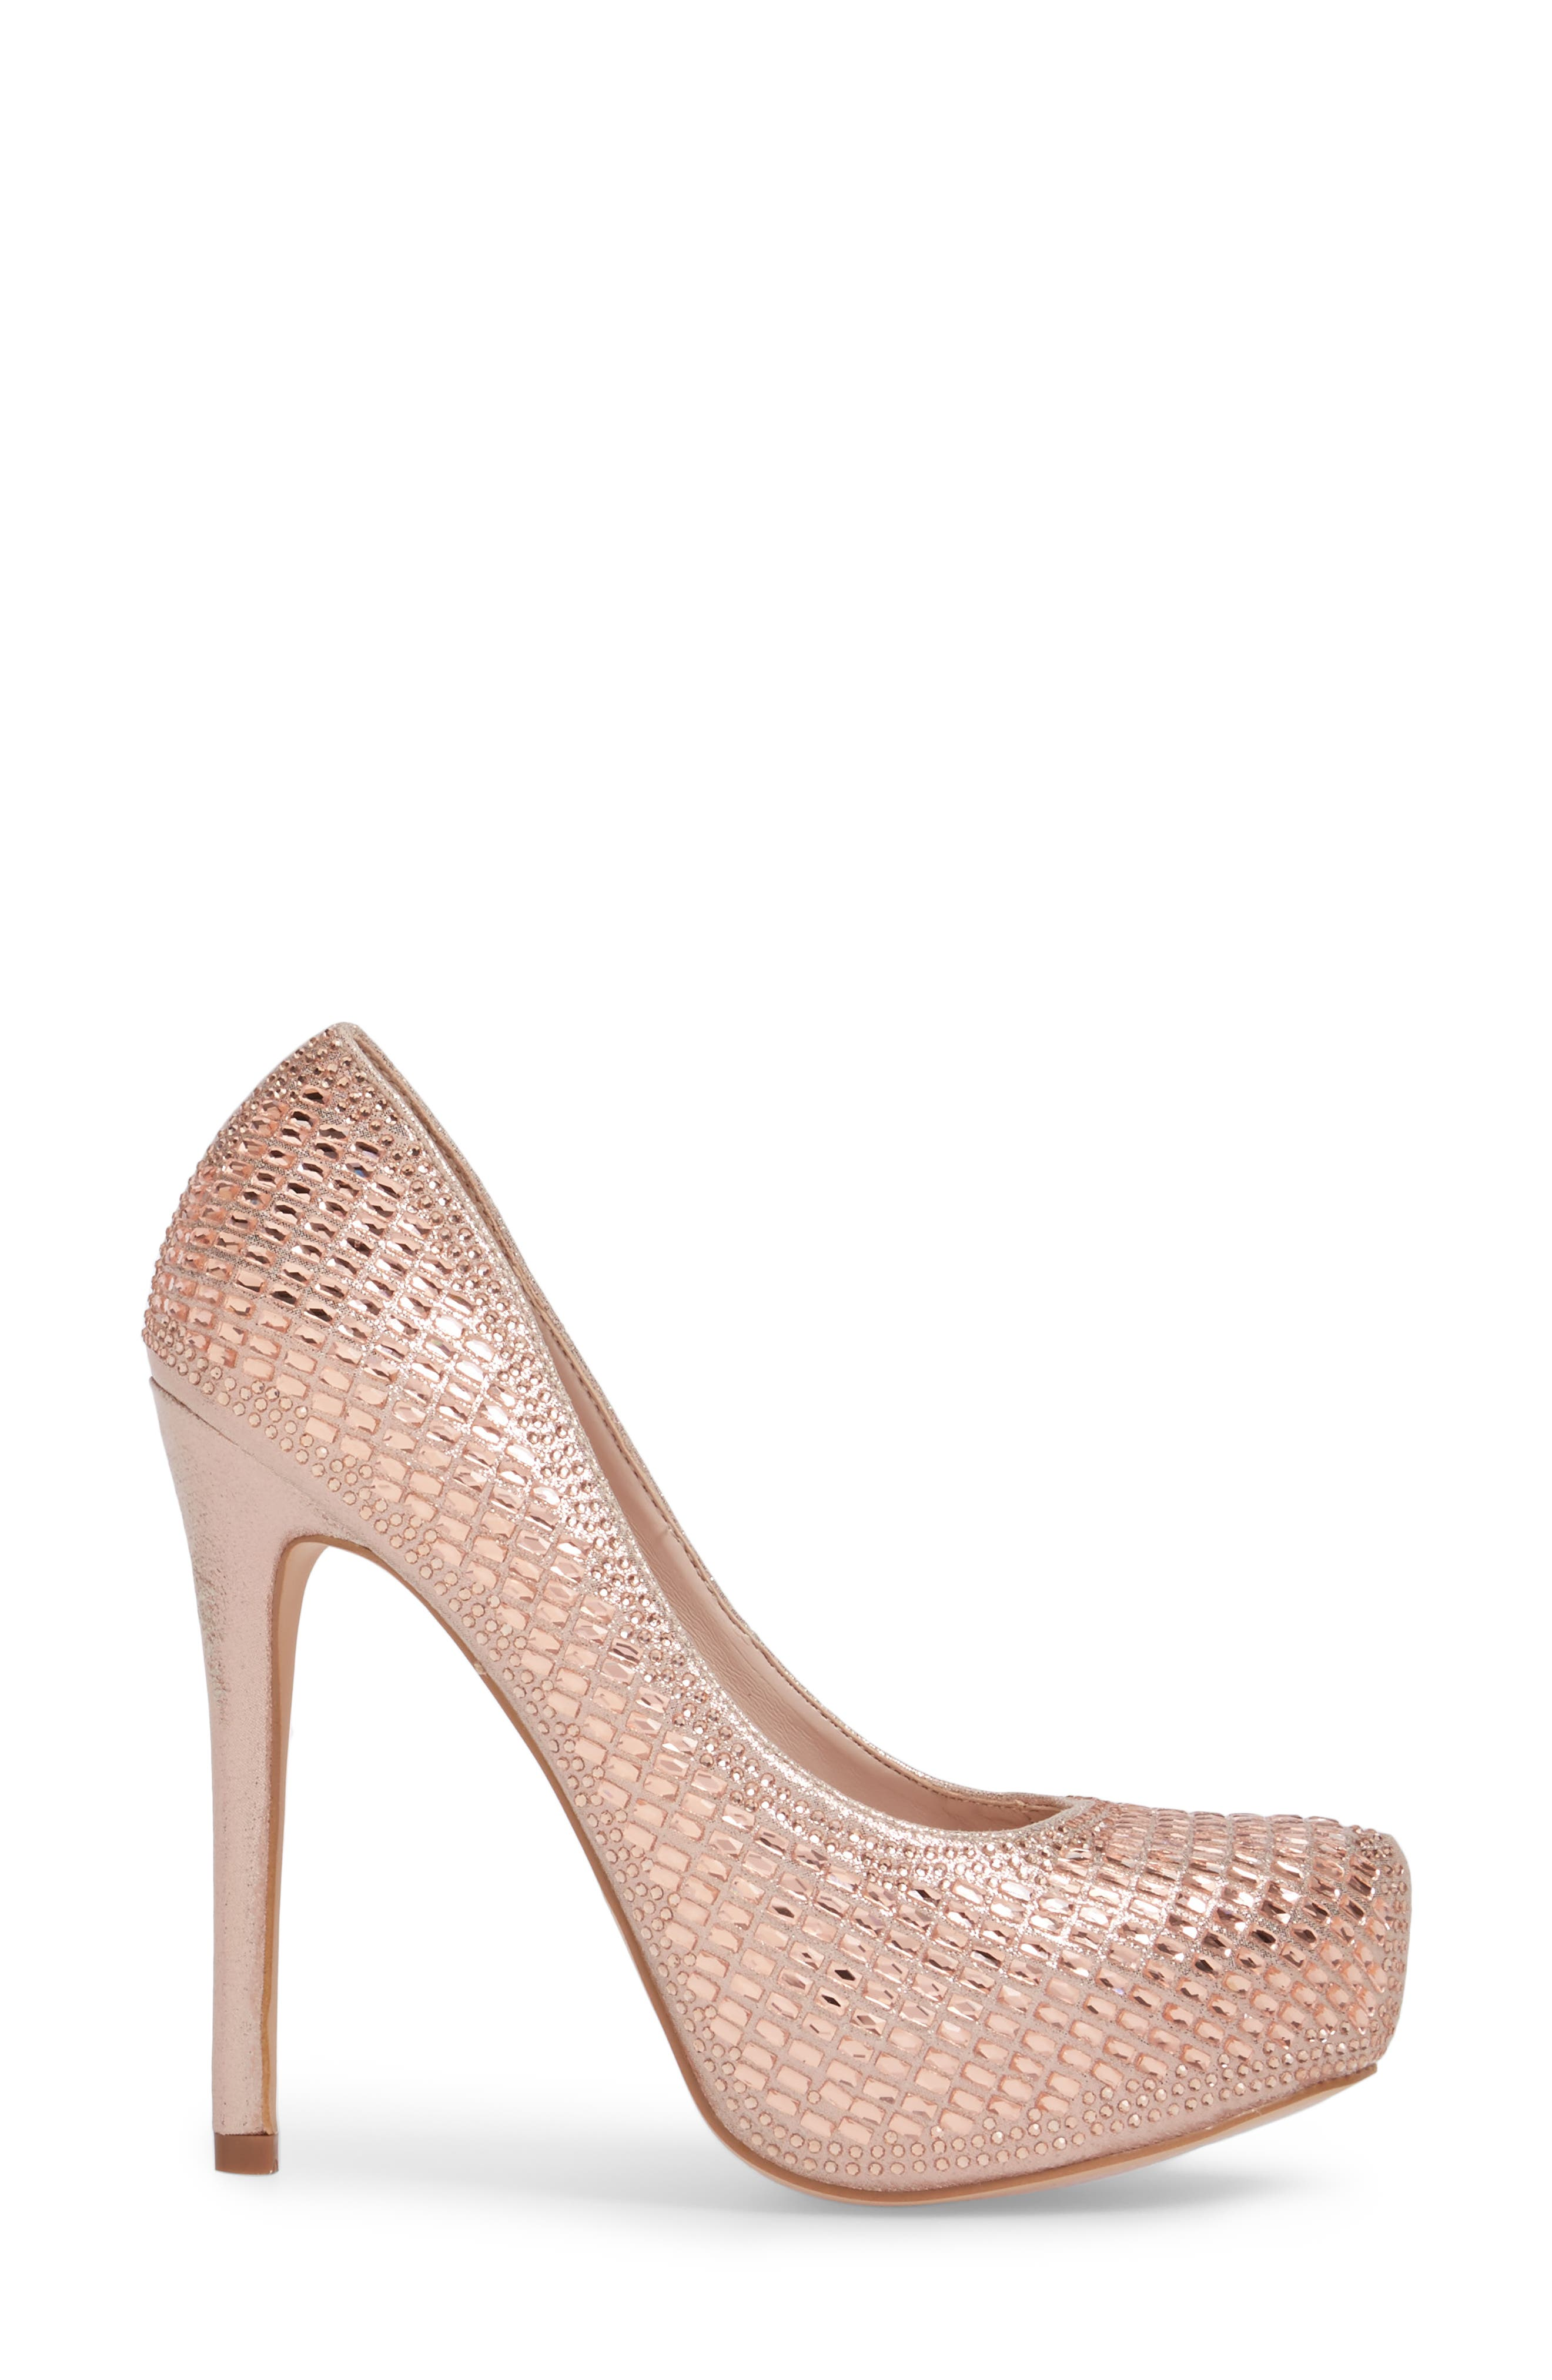 Vanna 5 Platform Pump,                             Alternate thumbnail 3, color,                             ROSE GOLD